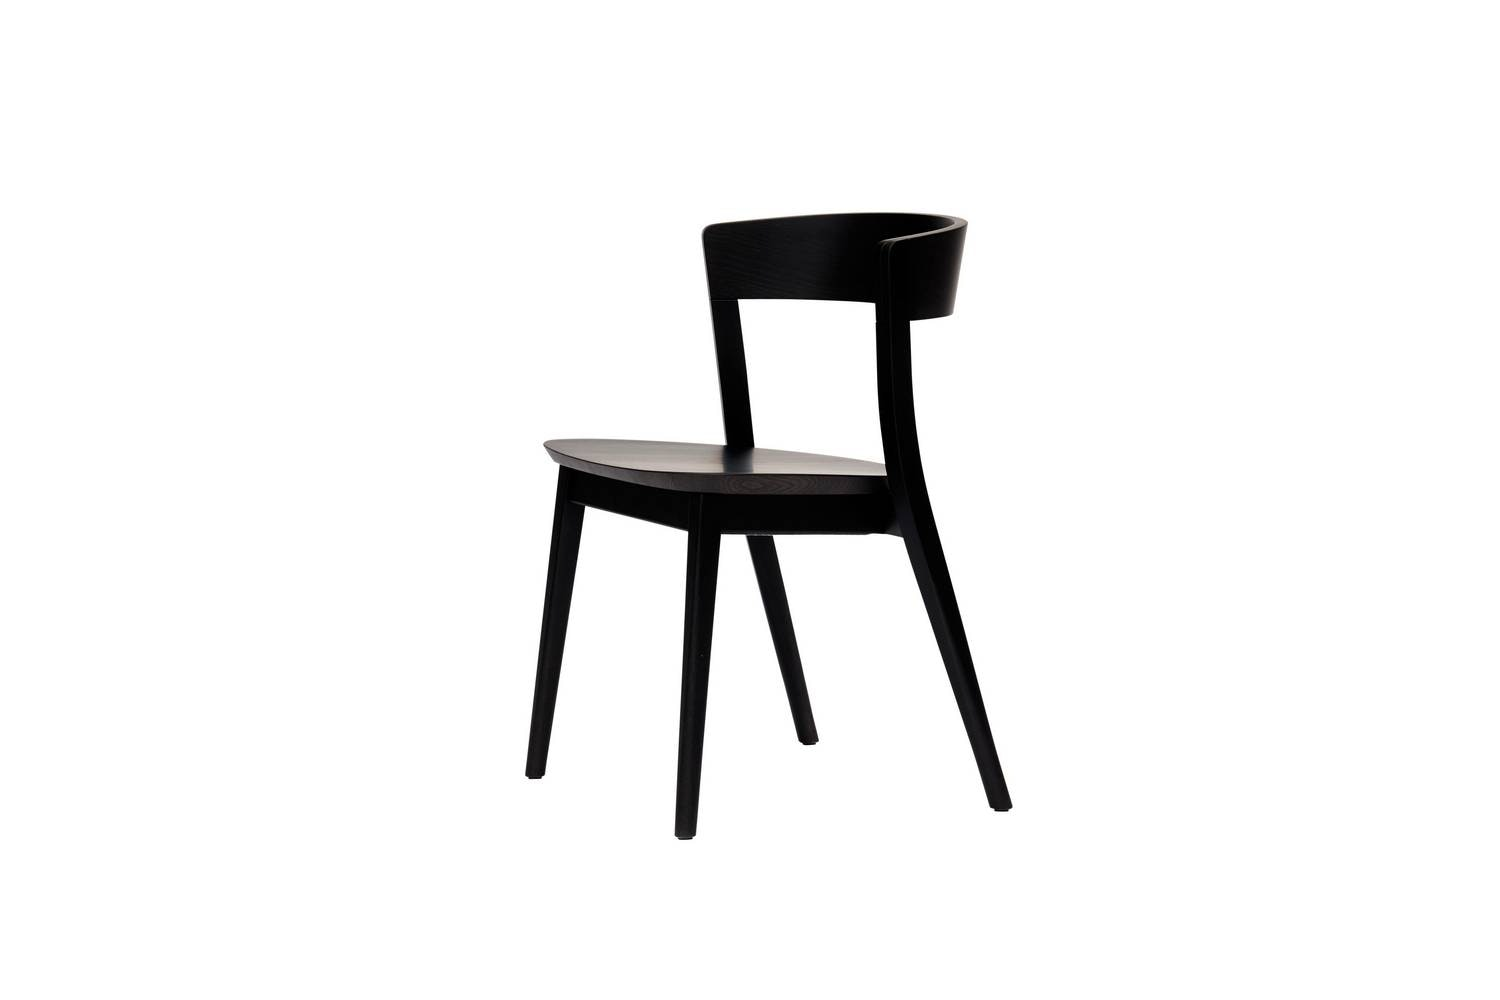 Clarke Chair by Metrica for SP01